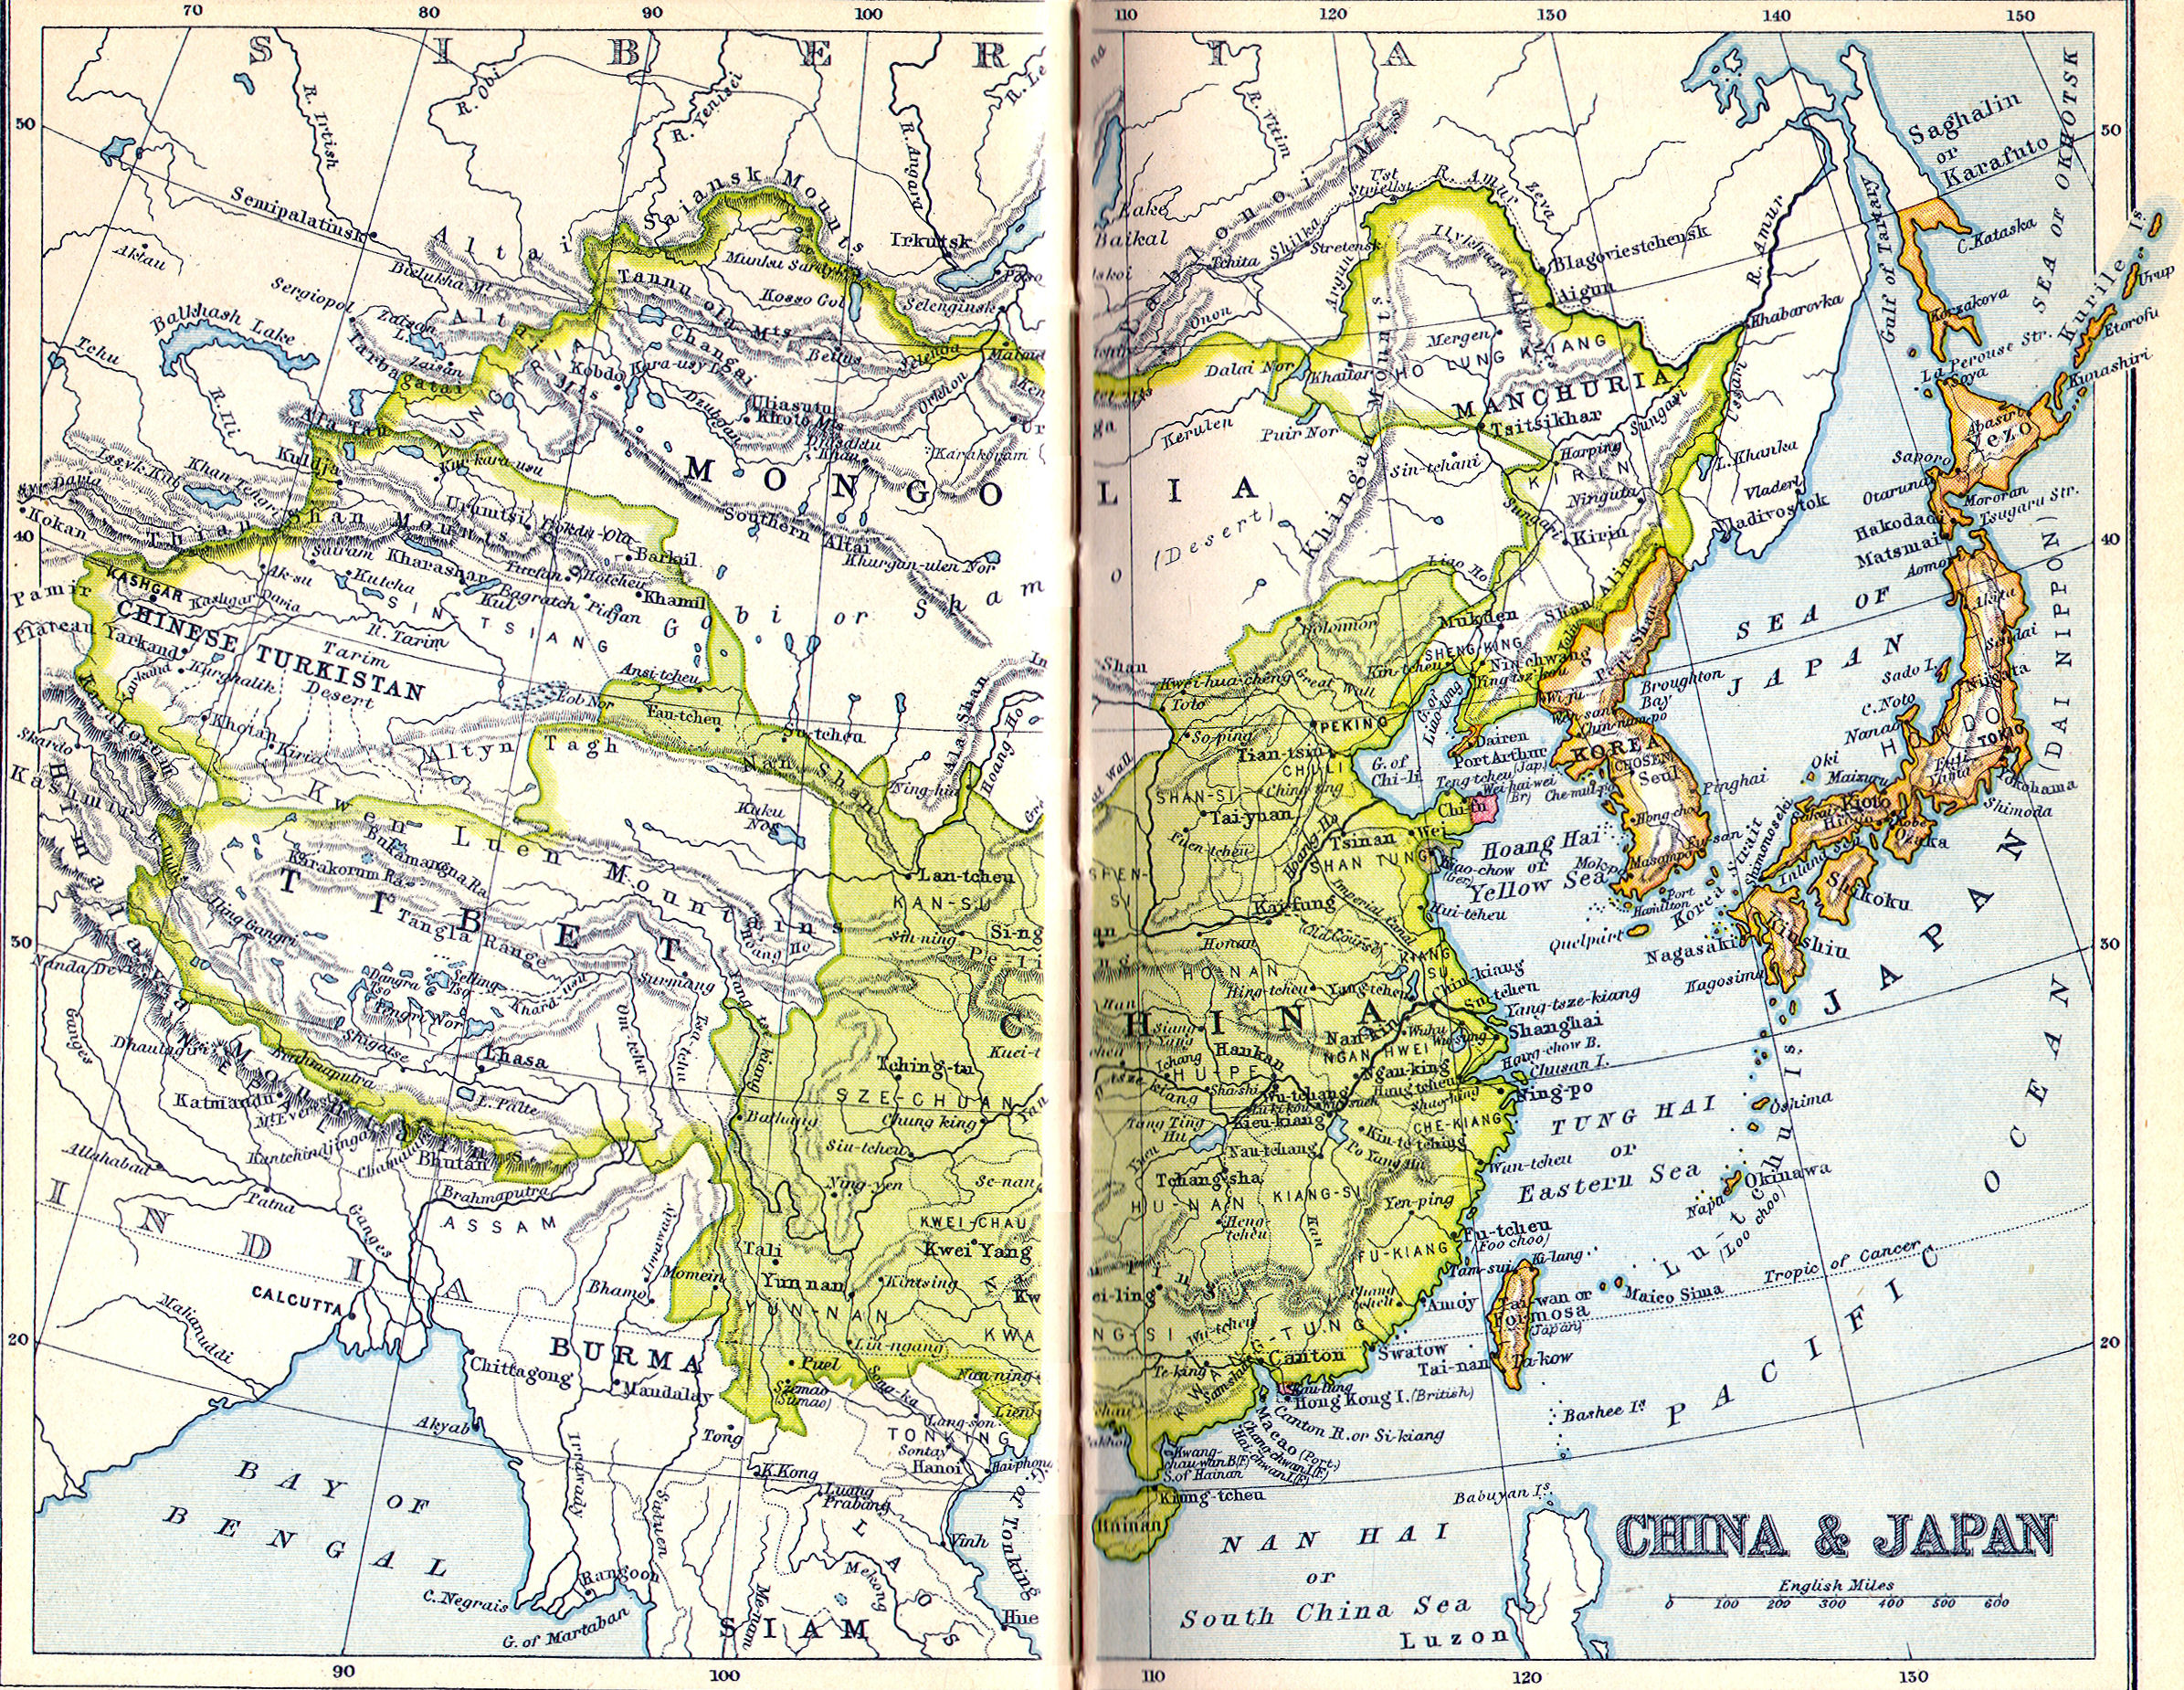 http://www.heritage-history.com/maps/lhasia/asia081.jpg